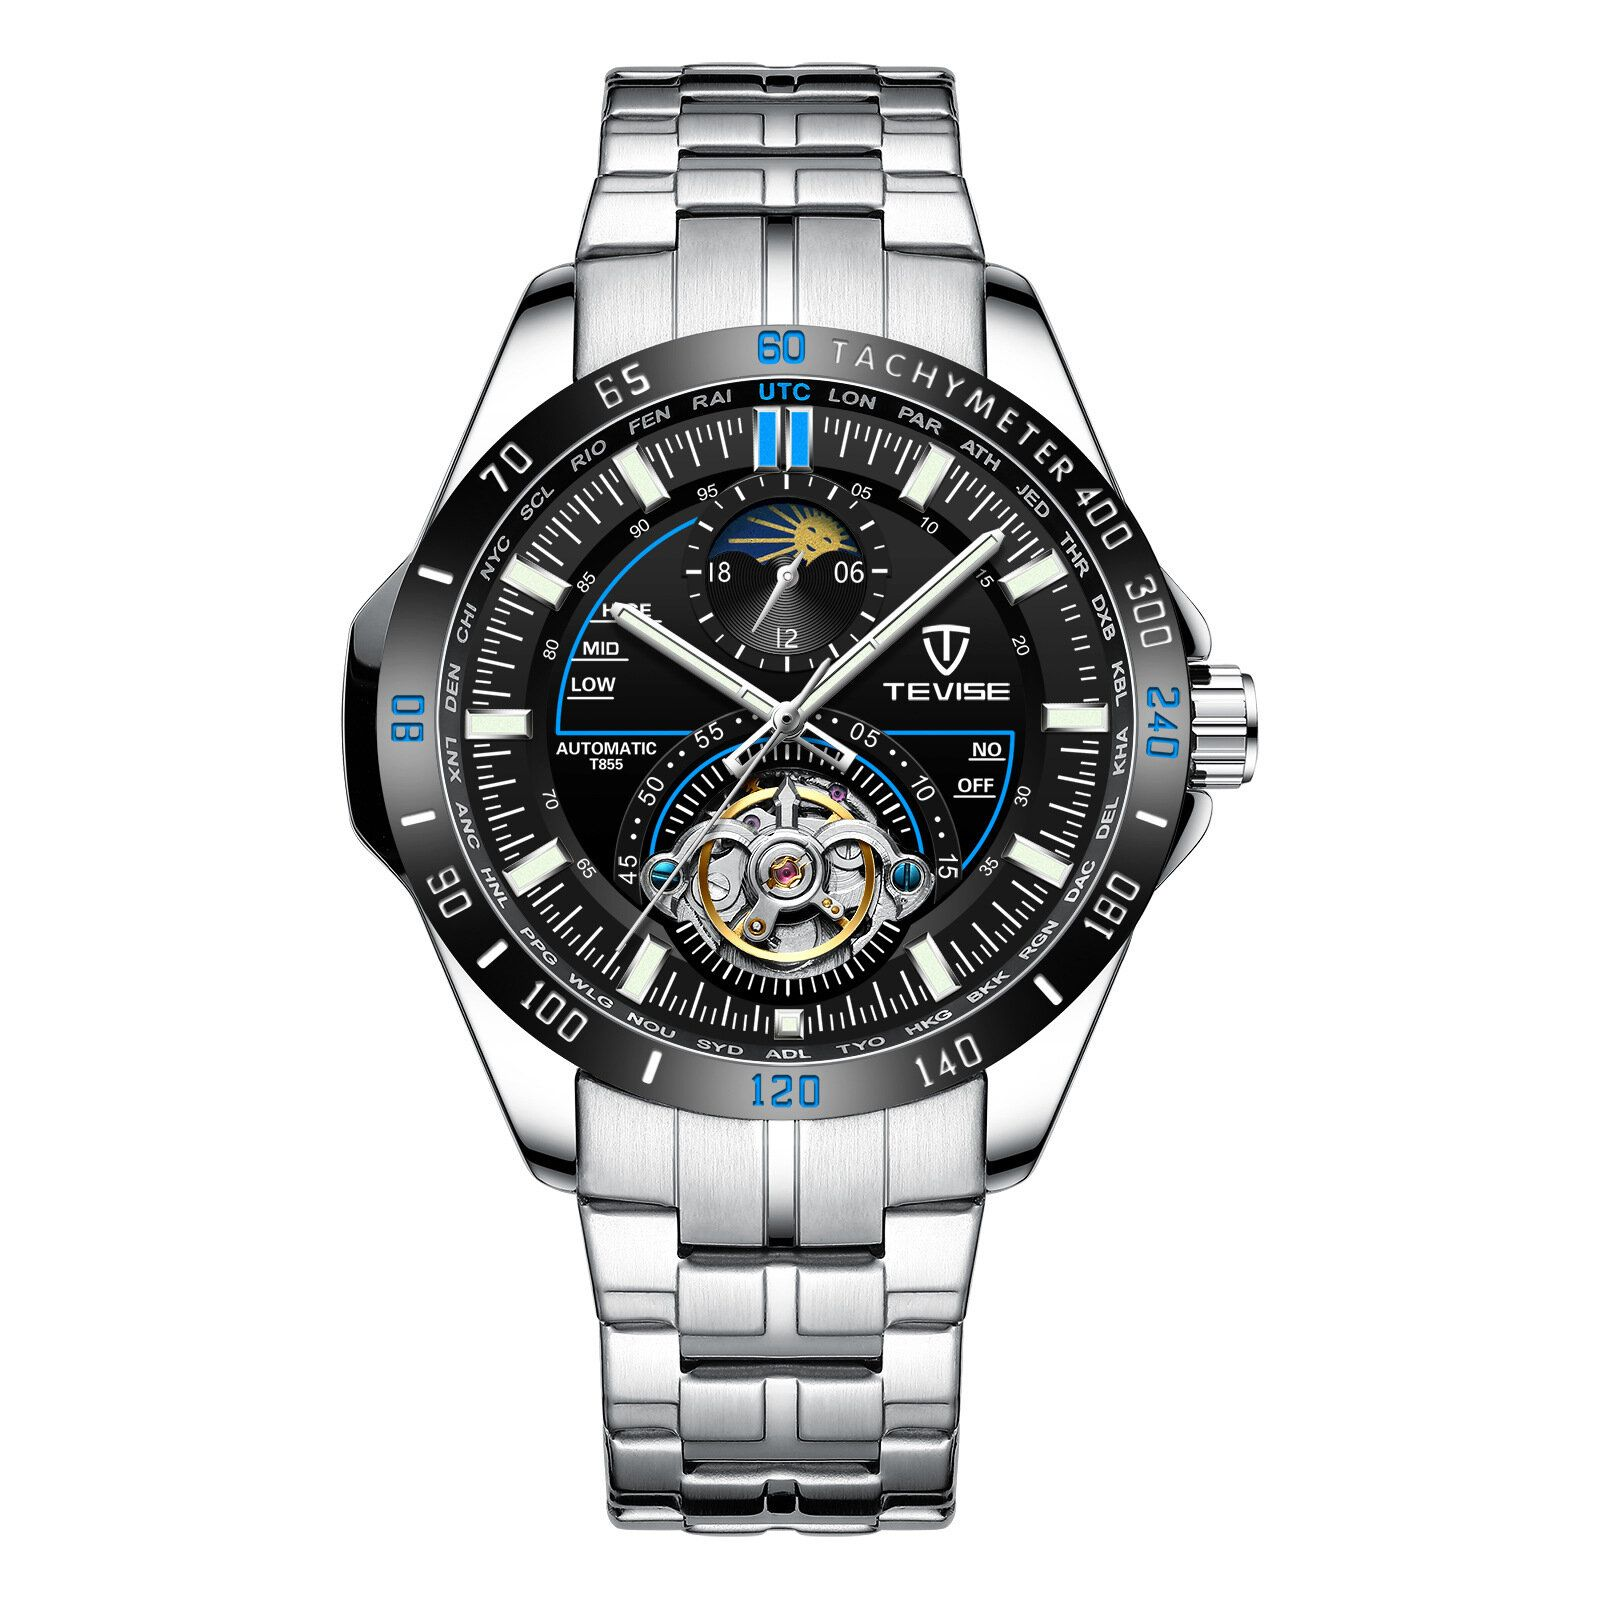 DLI US$33.31 TEVISE T855 Waterproof Full Steel Automatic Mechanical Watch Business Style Men Watch